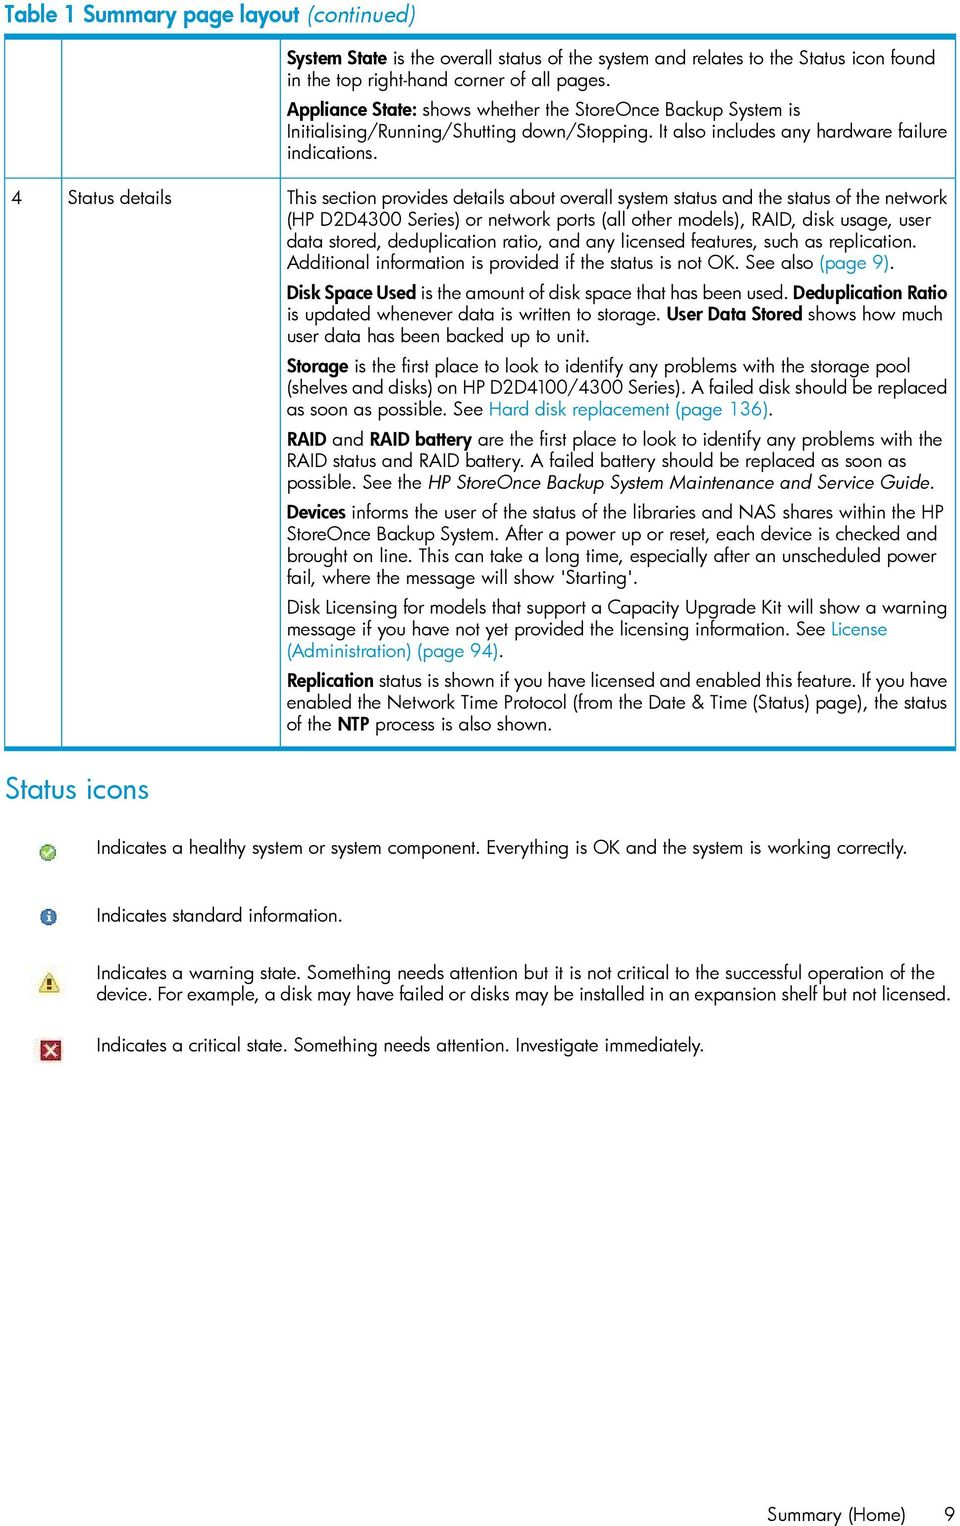 Hp Storeonce G2 Backup System User Guide Pdf